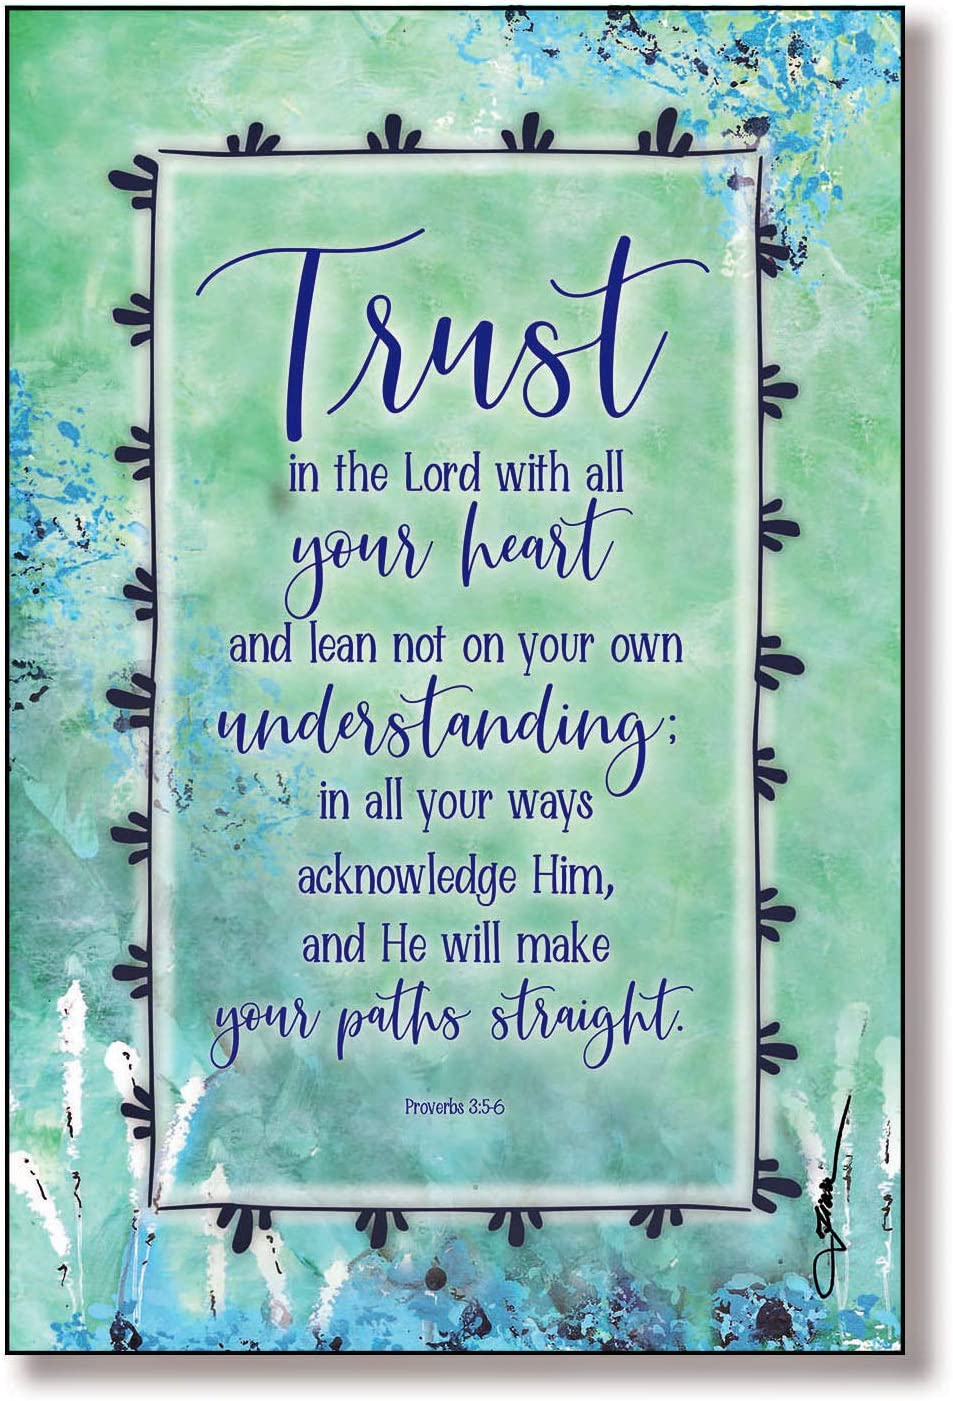 """Trust The Lord Wood Plaque Inspiring Quotes 6""""x9"""" - Classic Vertical Frame Wall & Tabletop Decoration   Easel & Hanging Hook   in All Your Ways acknowledge Him, and He Will Make Your Paths Straight"""